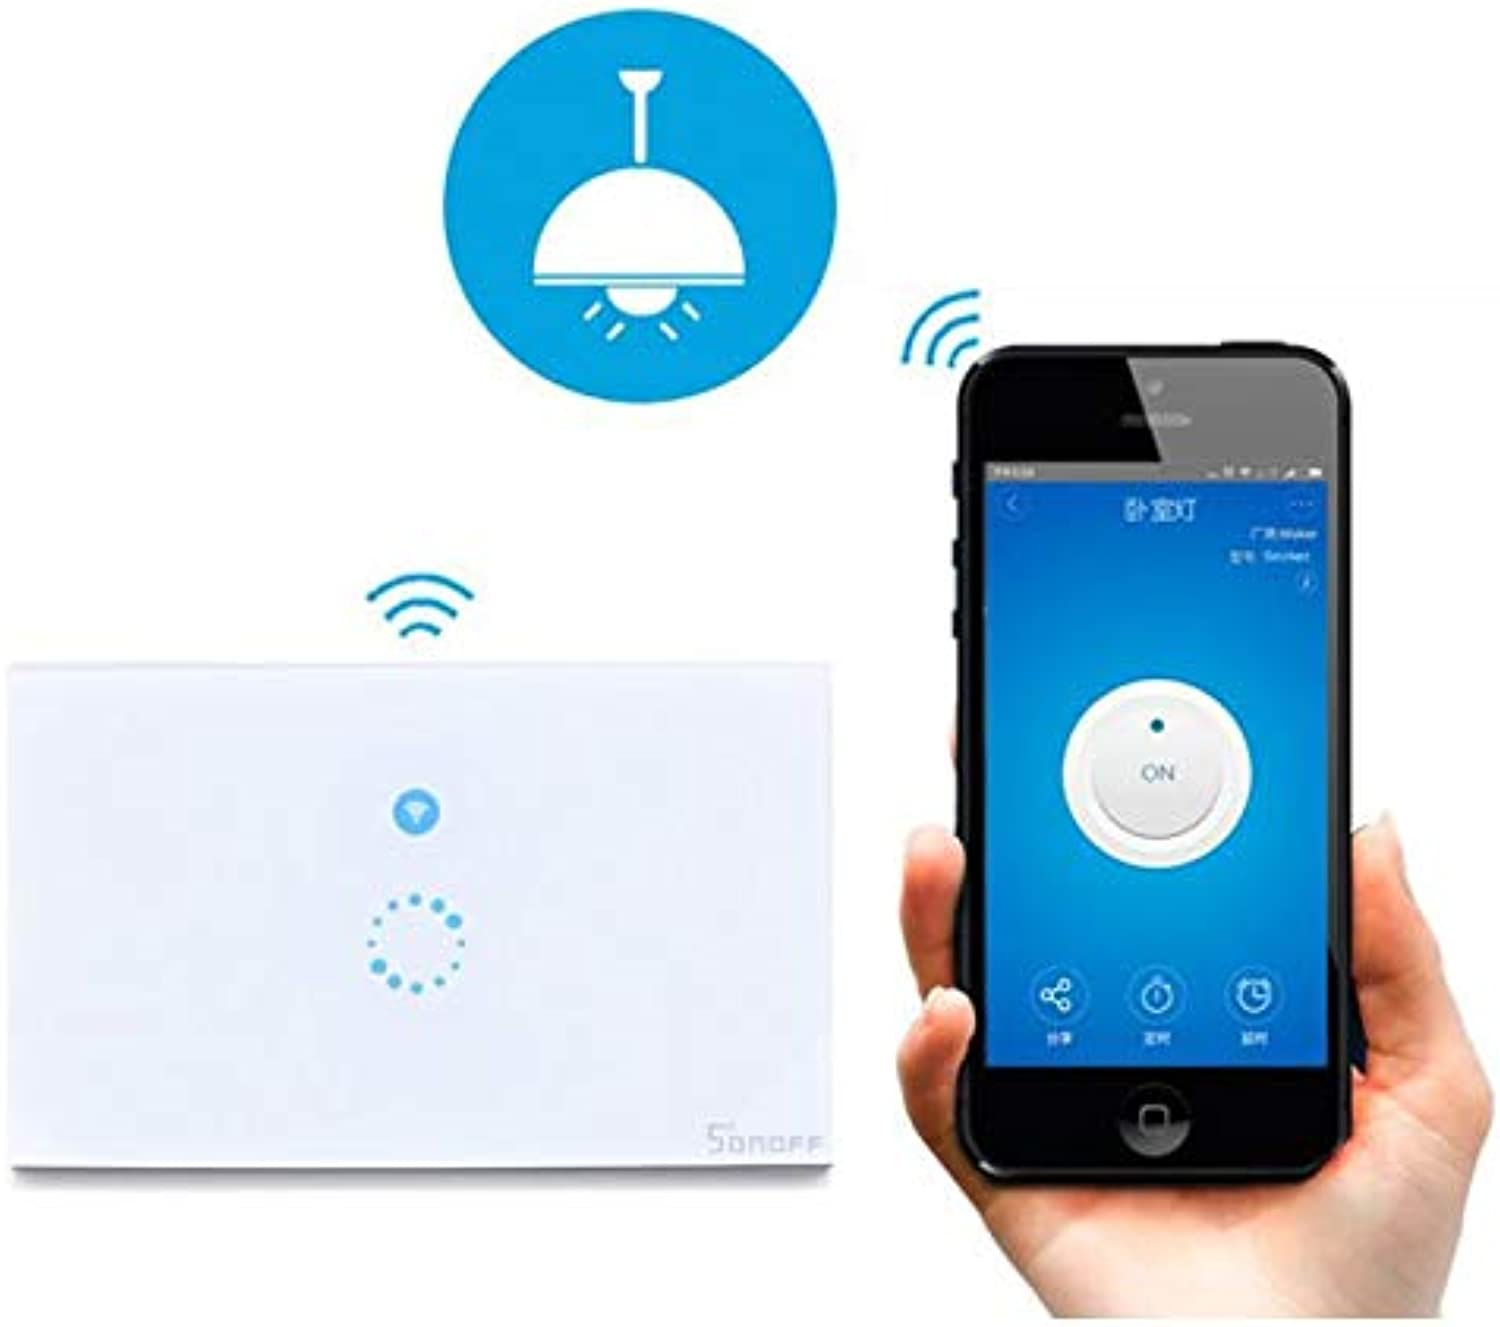 Switch Touch The Switch Home & Kitchen U.S. Regulations Switches & Wire Wirelessremotecontrol Smartre Motecontrol Timing